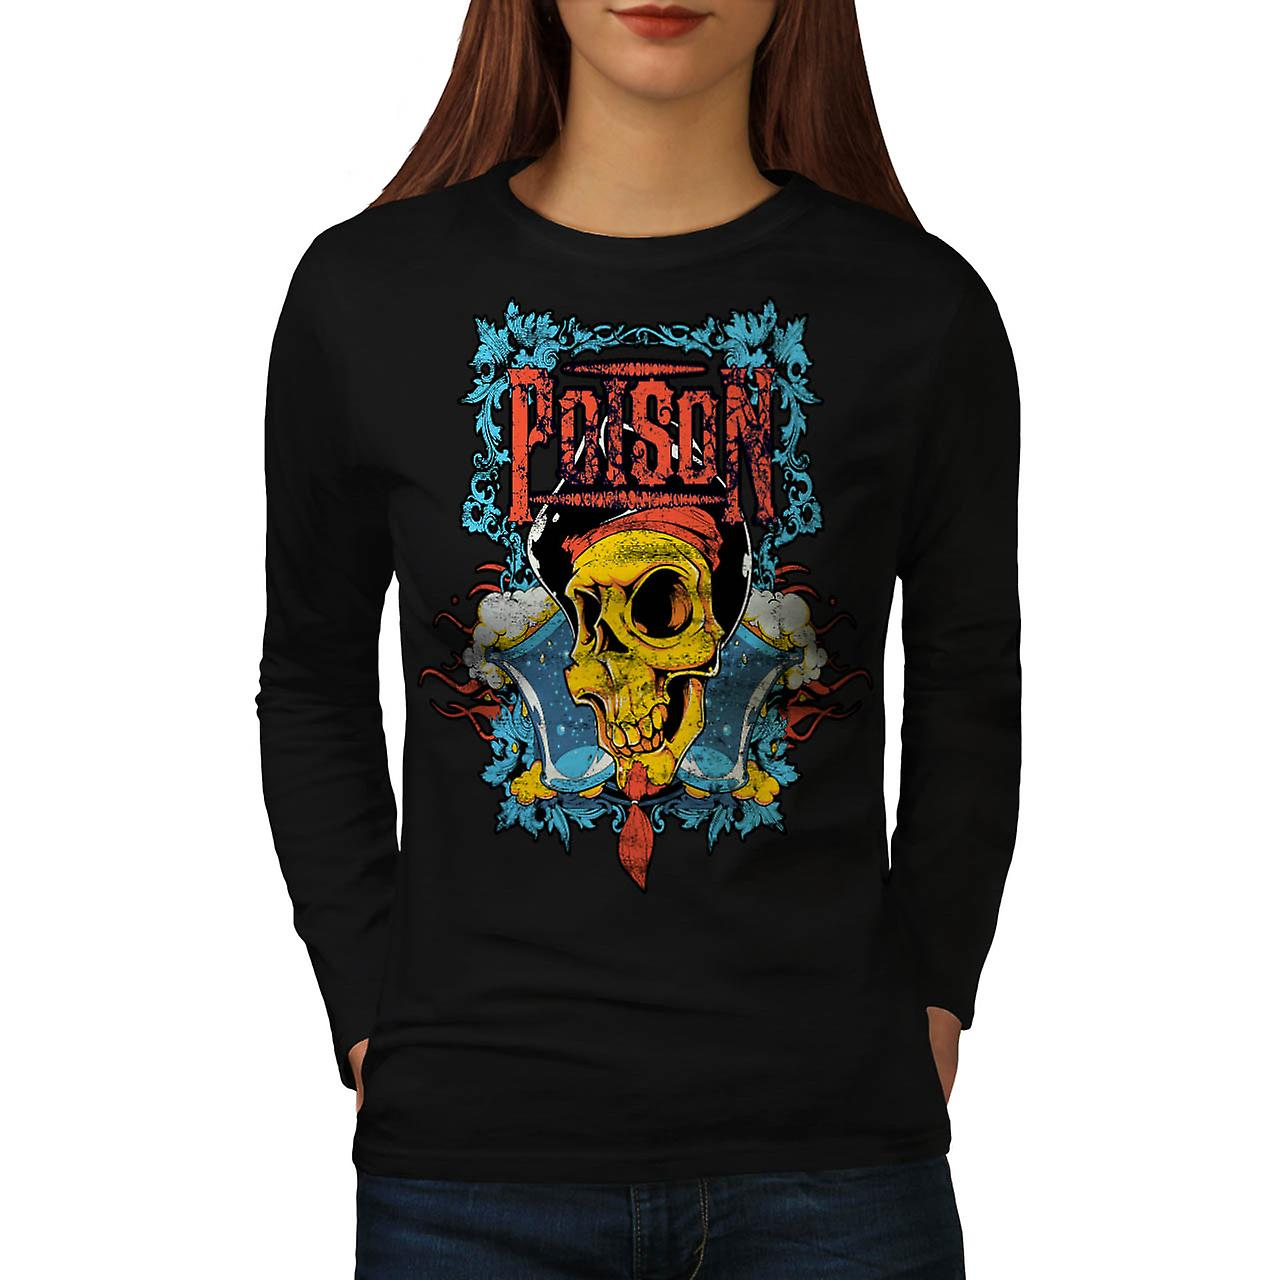 Poison Pirate Skull böse Monster Frauen Langarm T-shirt schwarz | Wellcoda